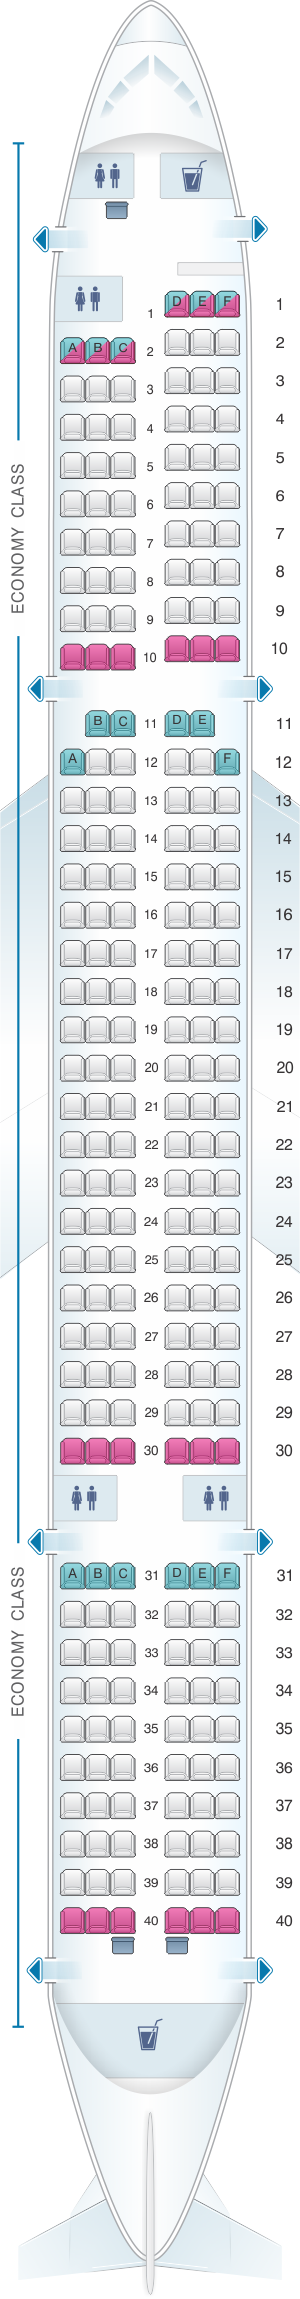 Seat map for Monarch Airlines Boeing B757 200